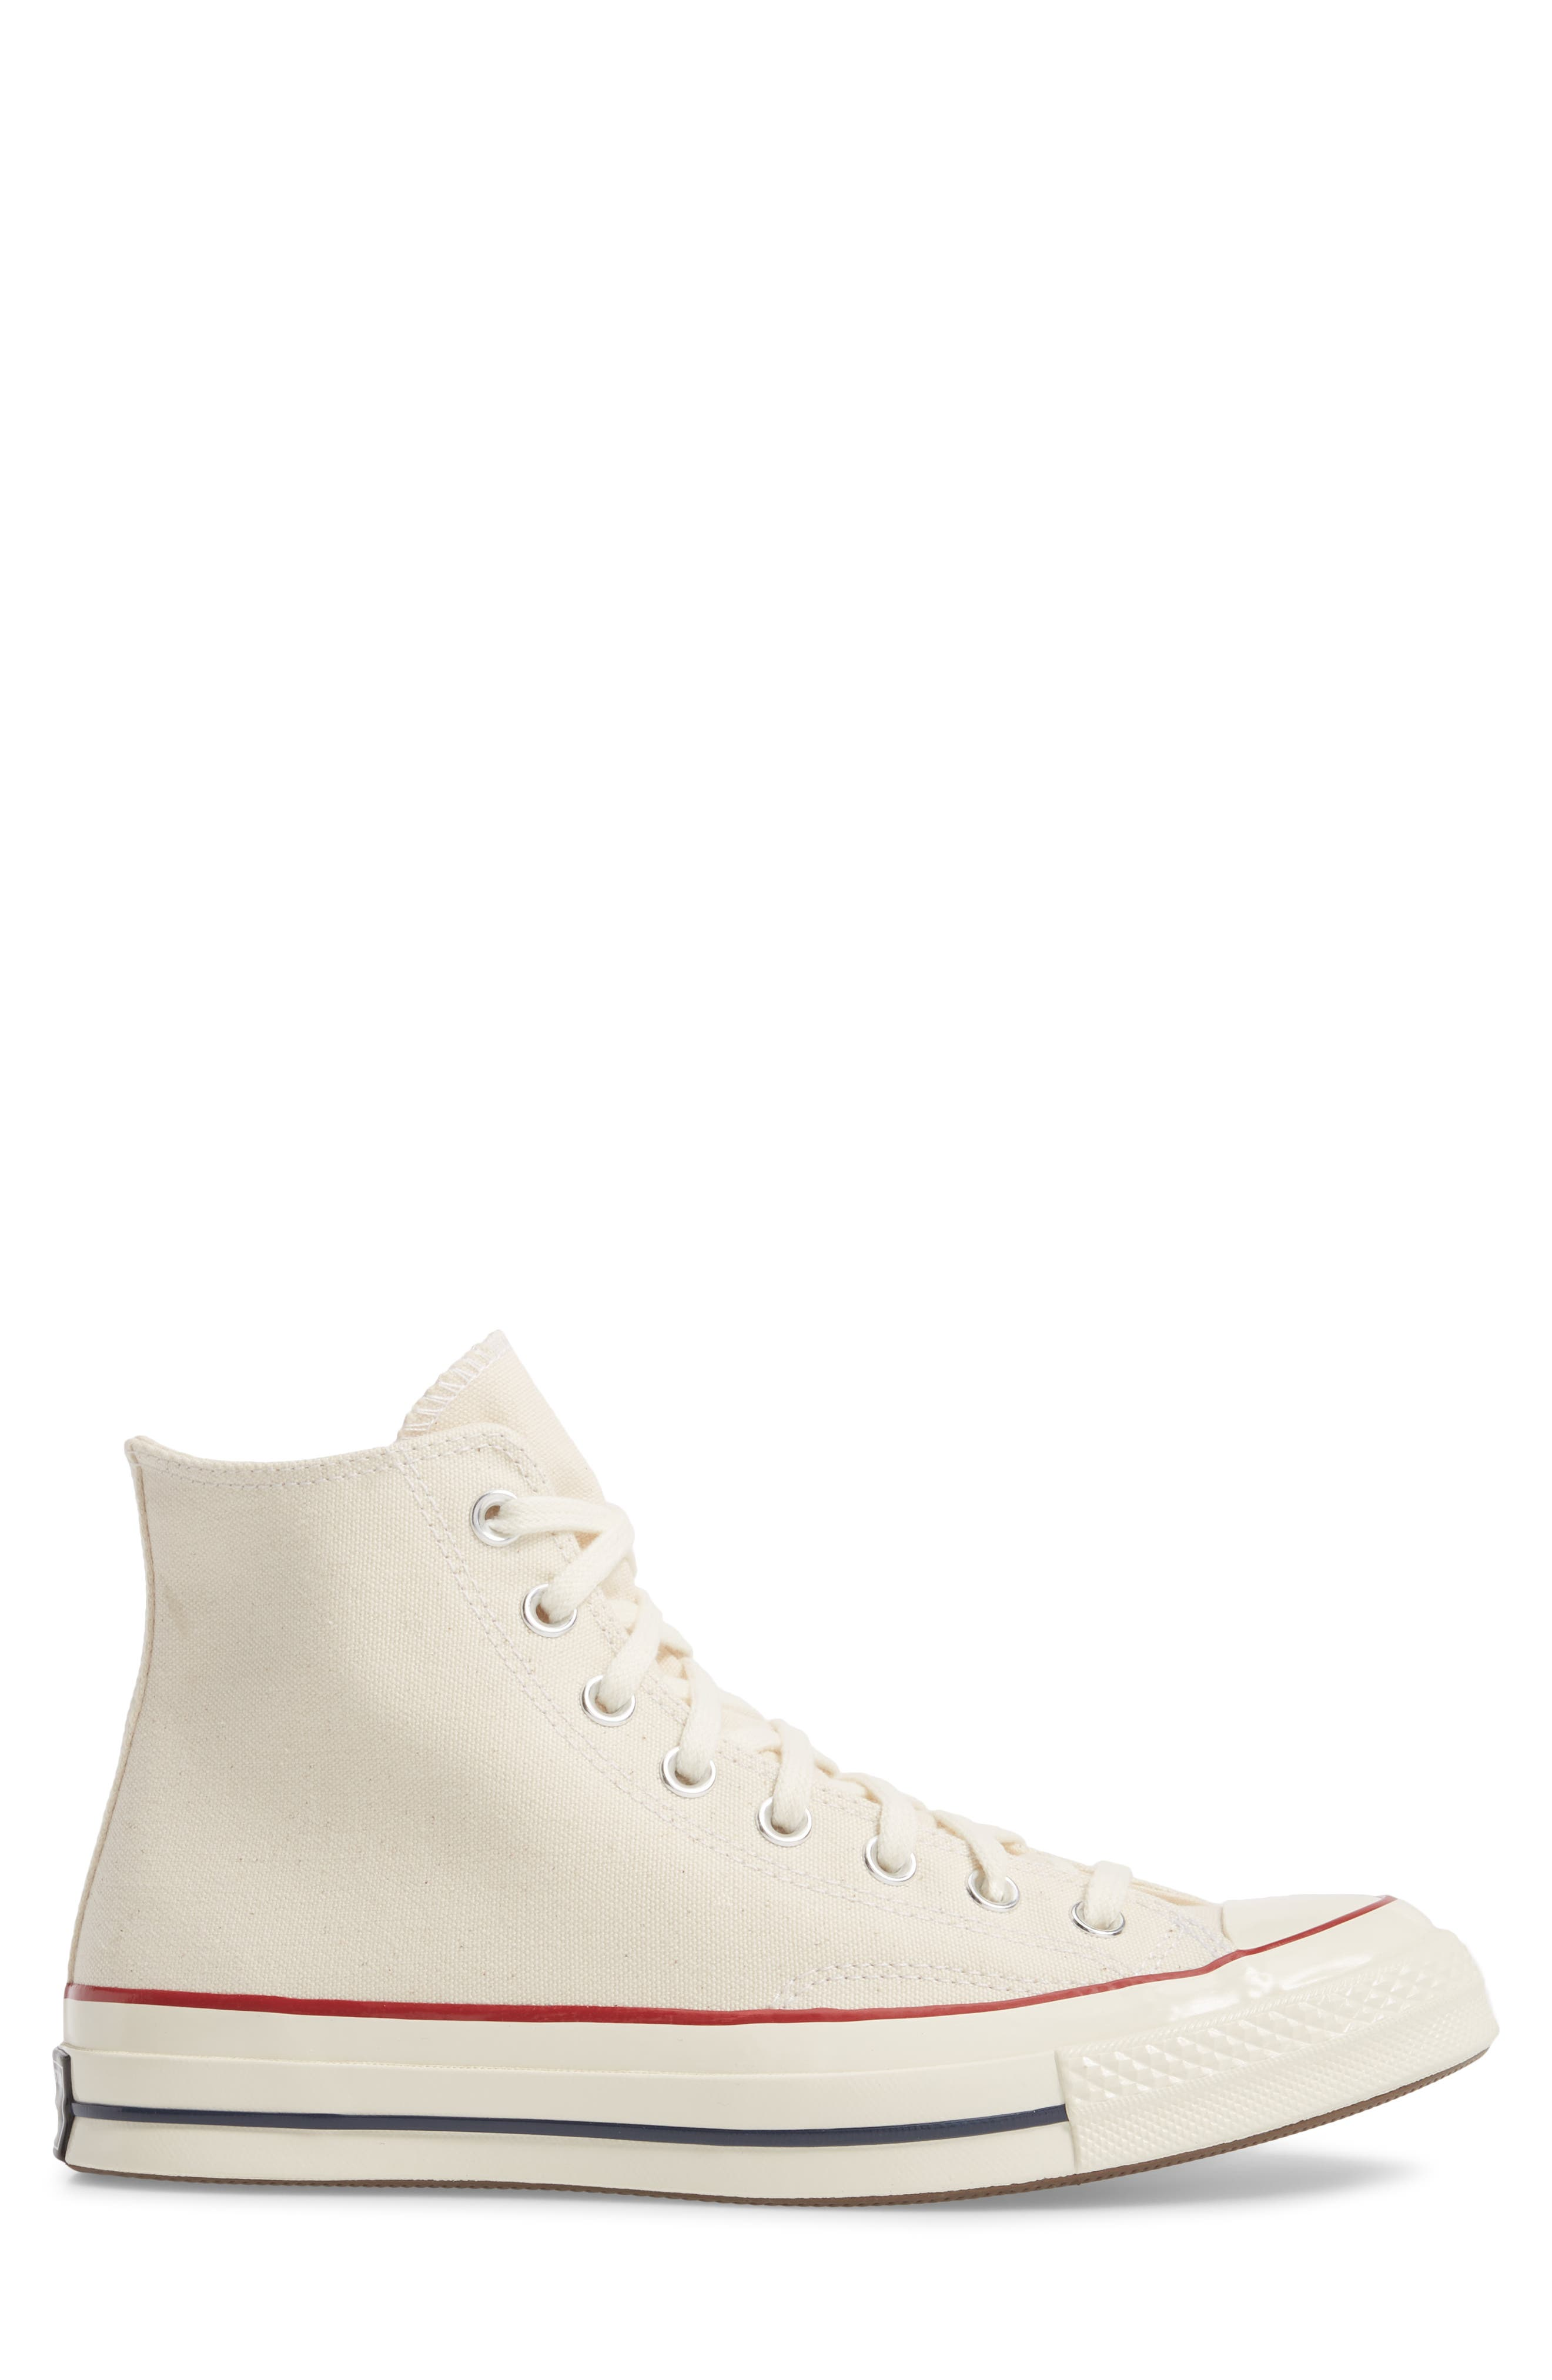 Chuck Taylor<sup>®</sup> All Star<sup>®</sup> 70 High Top Sneaker,                             Alternate thumbnail 3, color,                             Parchment